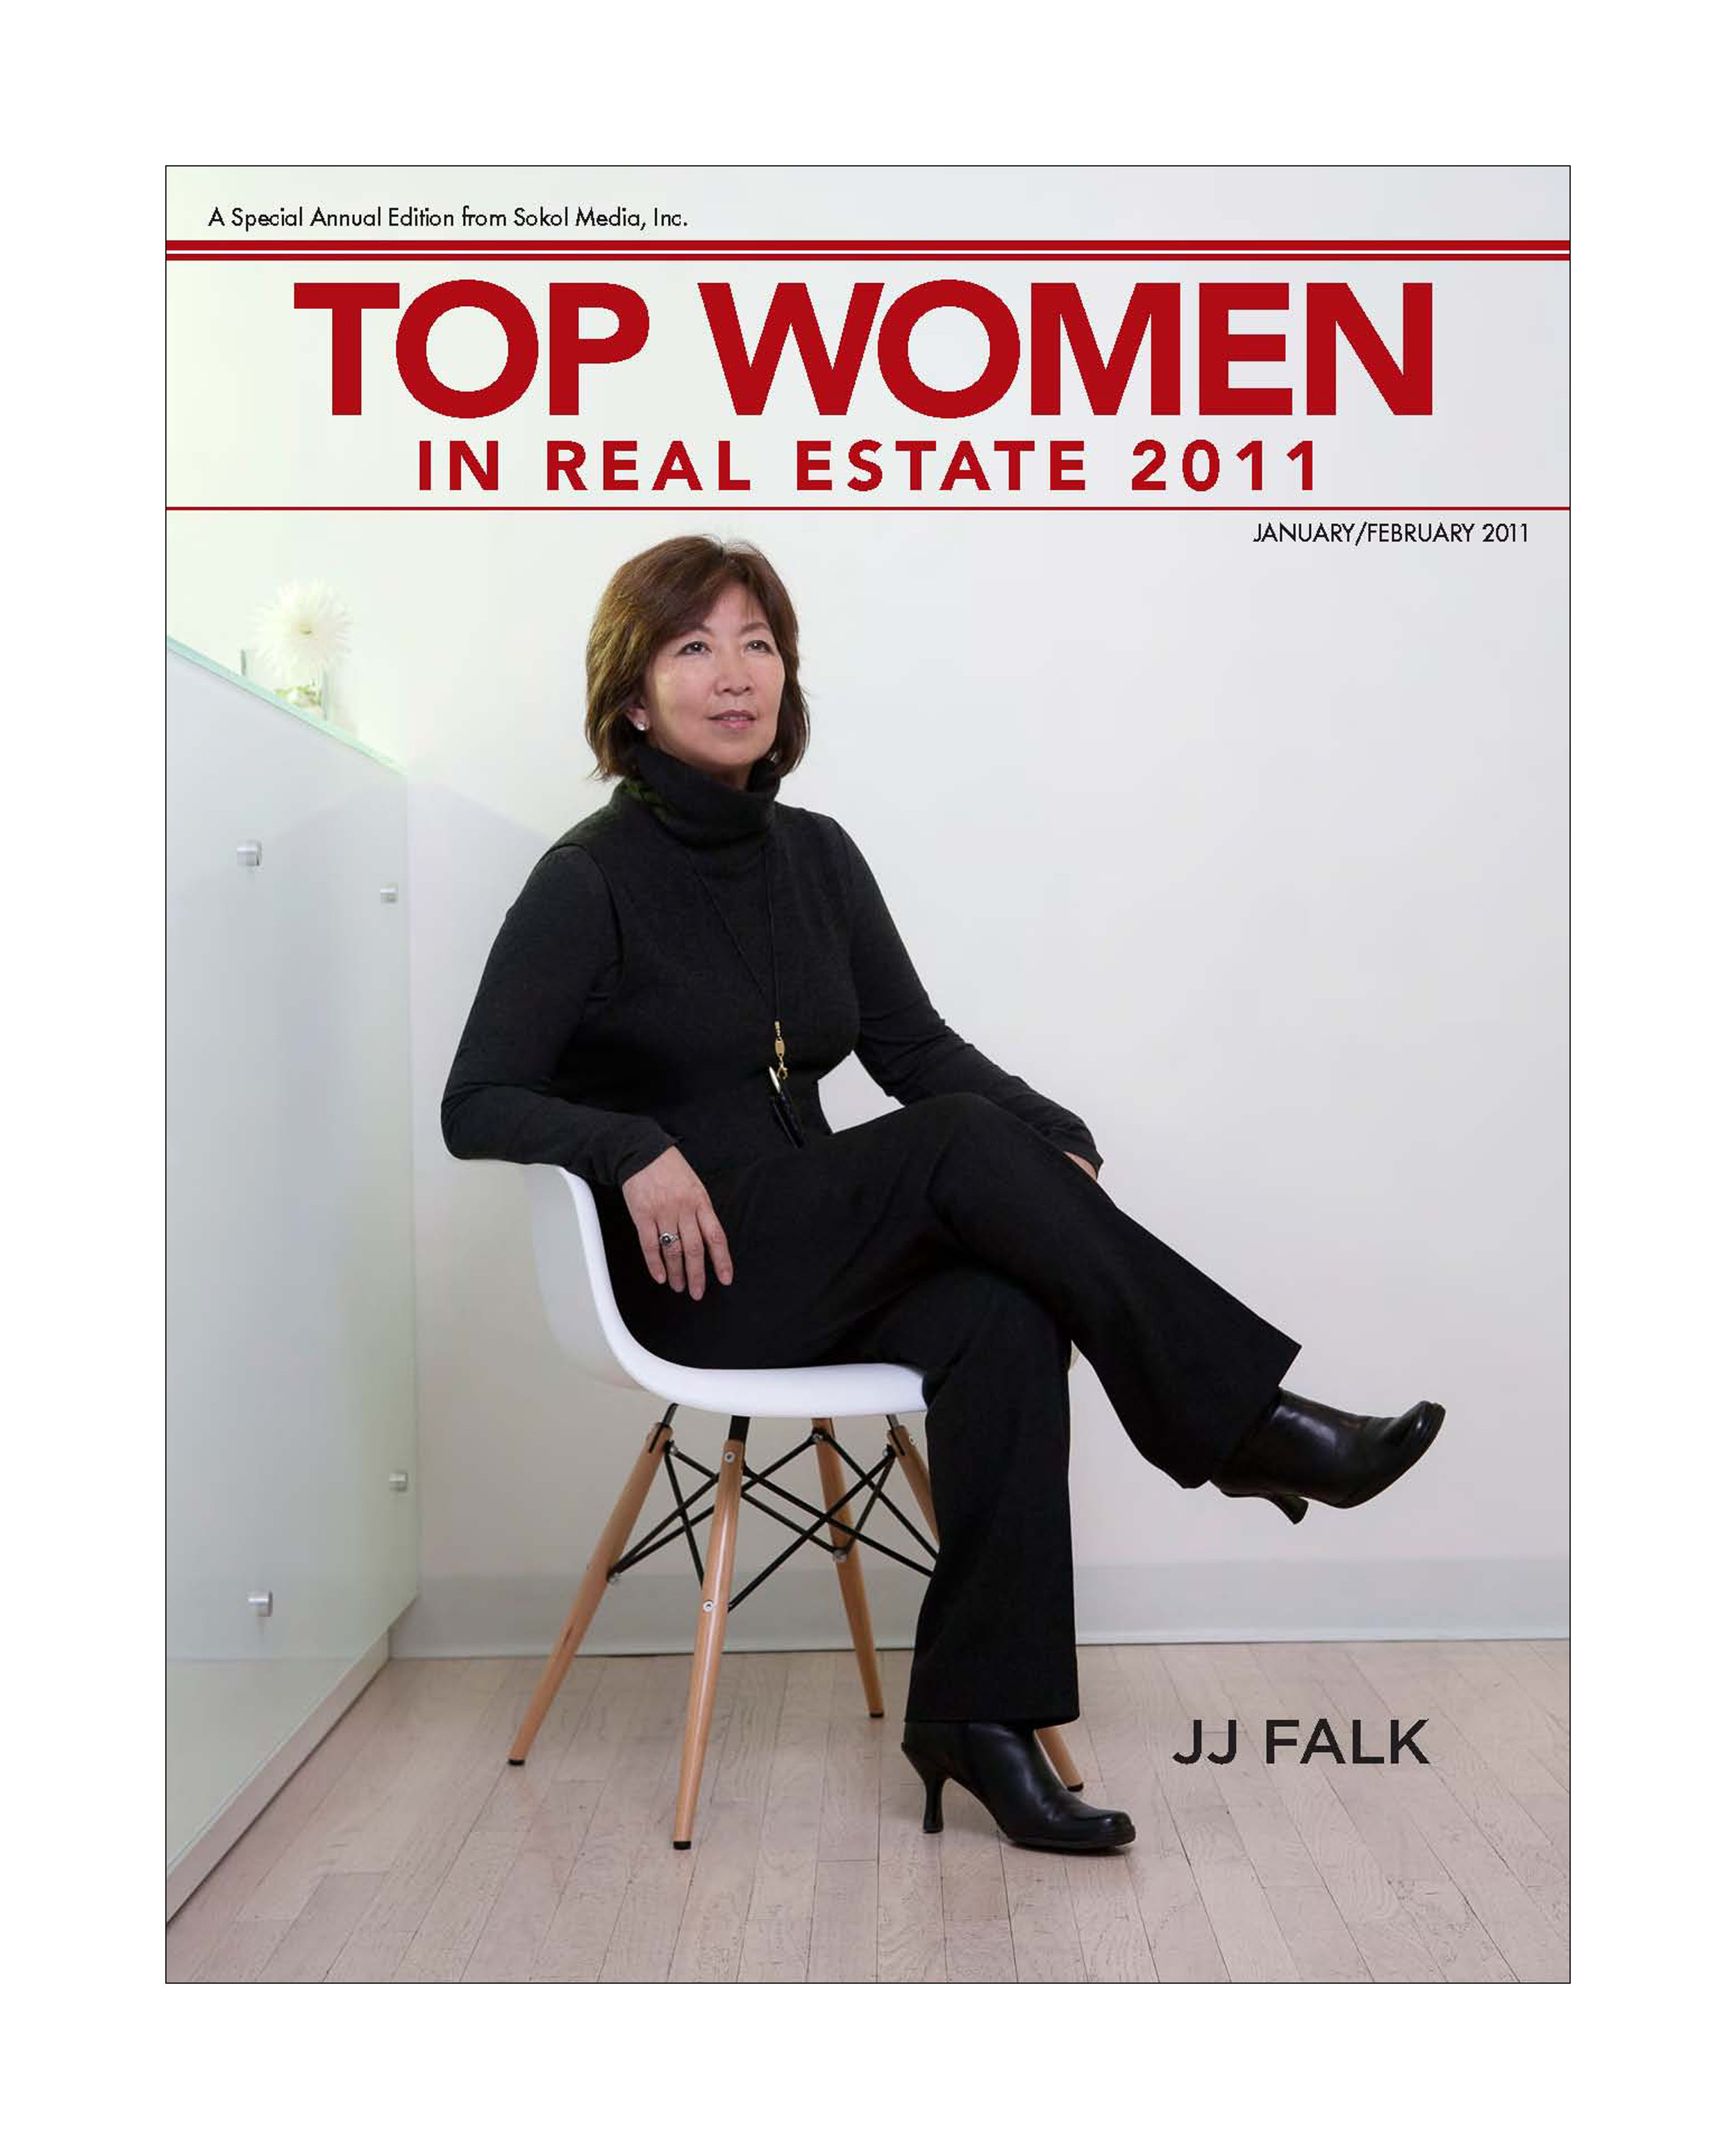 2011 Top Women in Real Estate